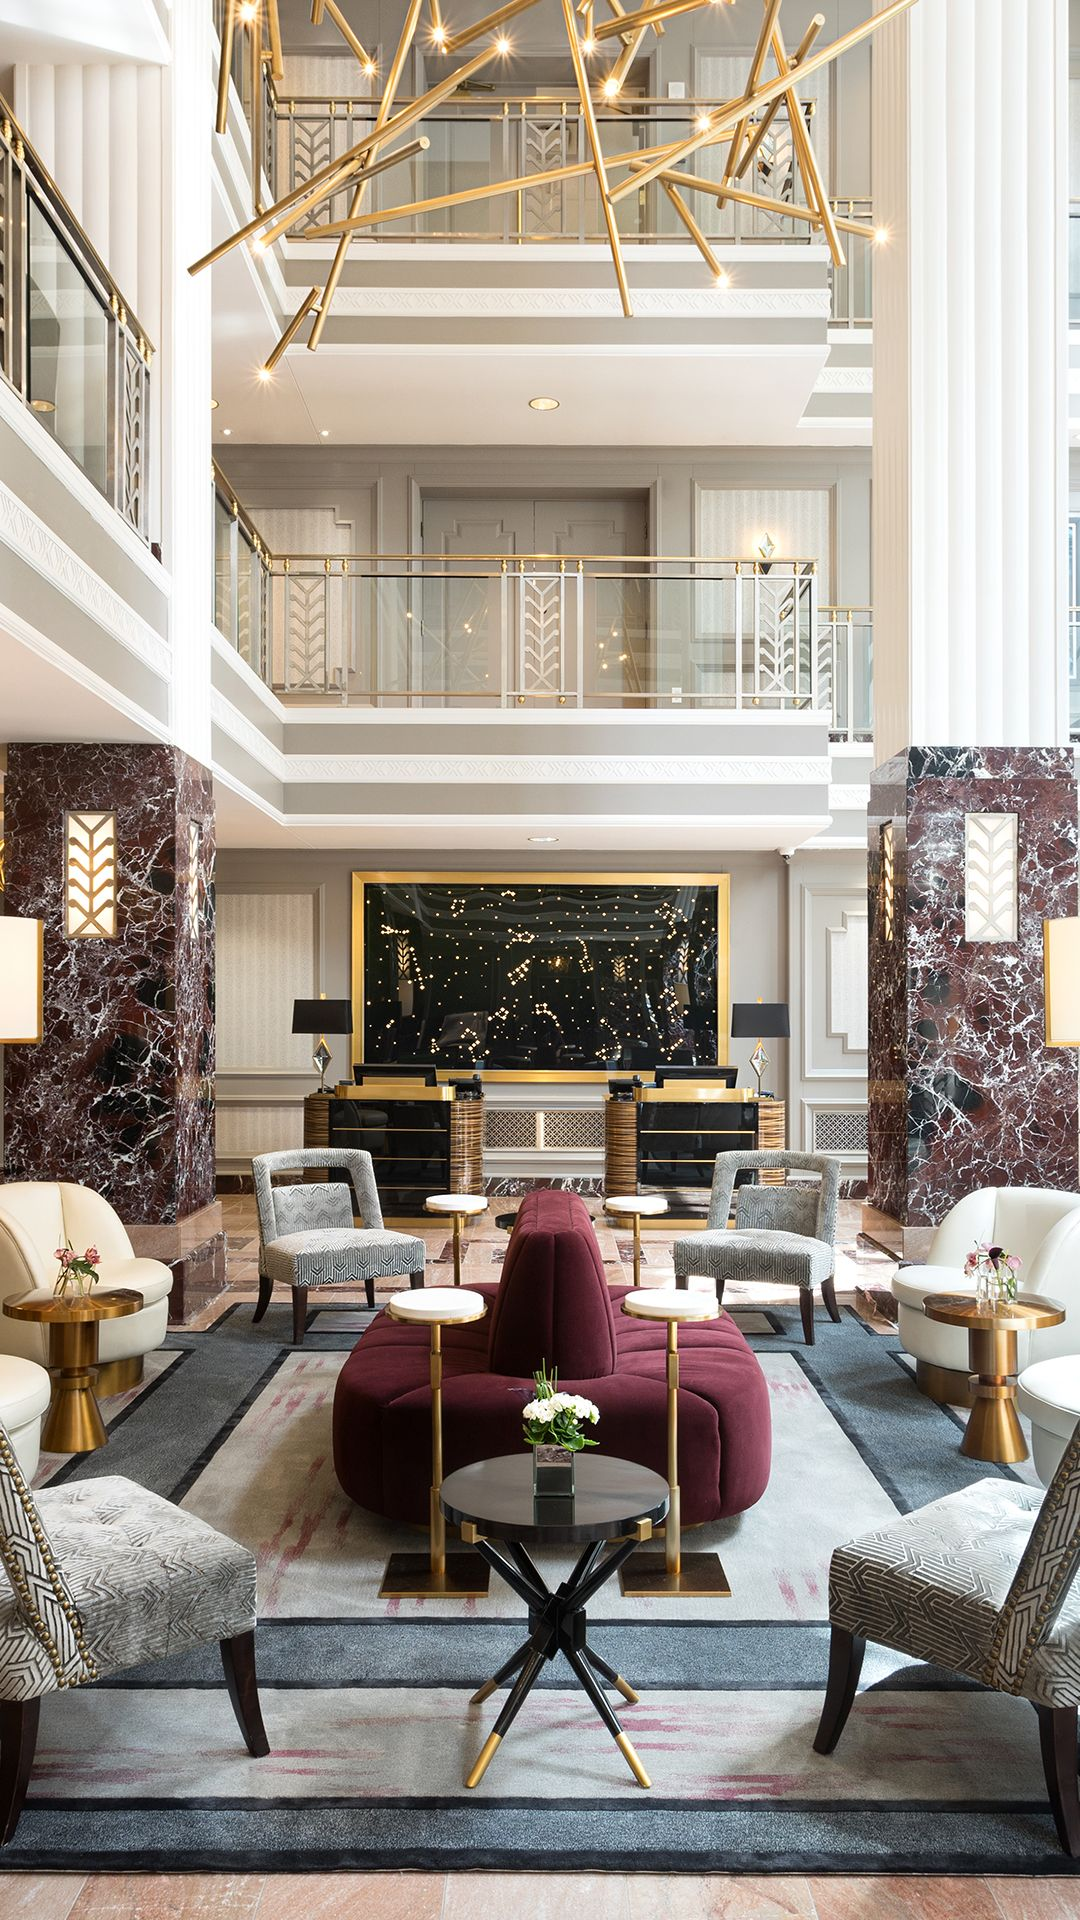 6 Must Visit Historic Hotel Lobbies The Scout Guide Luxury Hotels Interior Modern Hotel Lobby Hotel Lobby Design